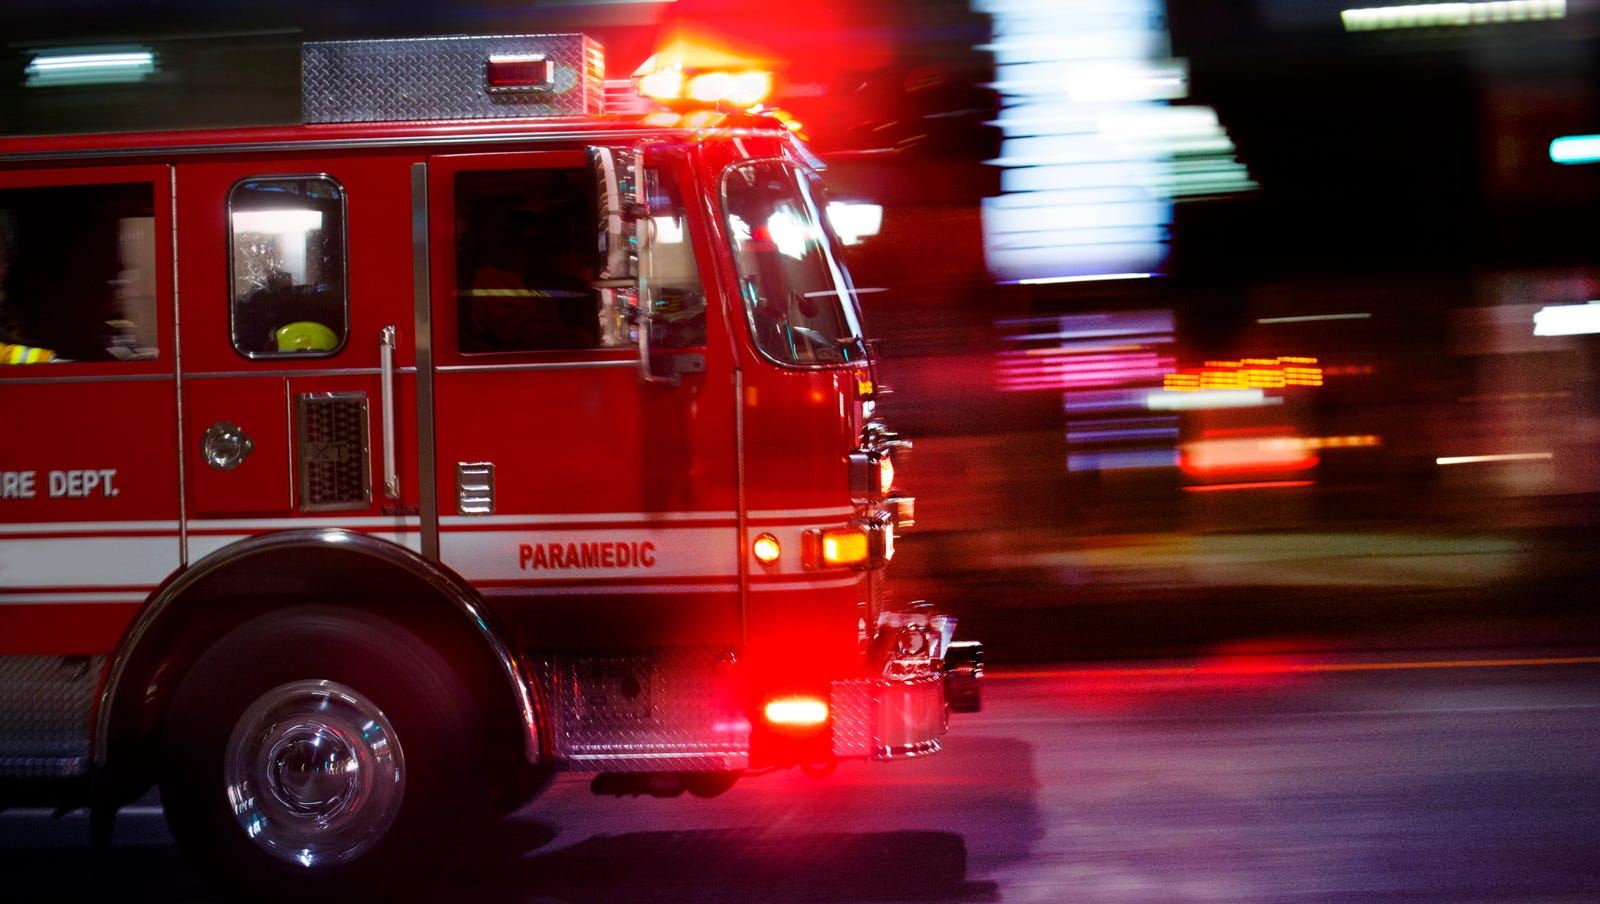 Police: Body found in vacant house after fire in Detroit